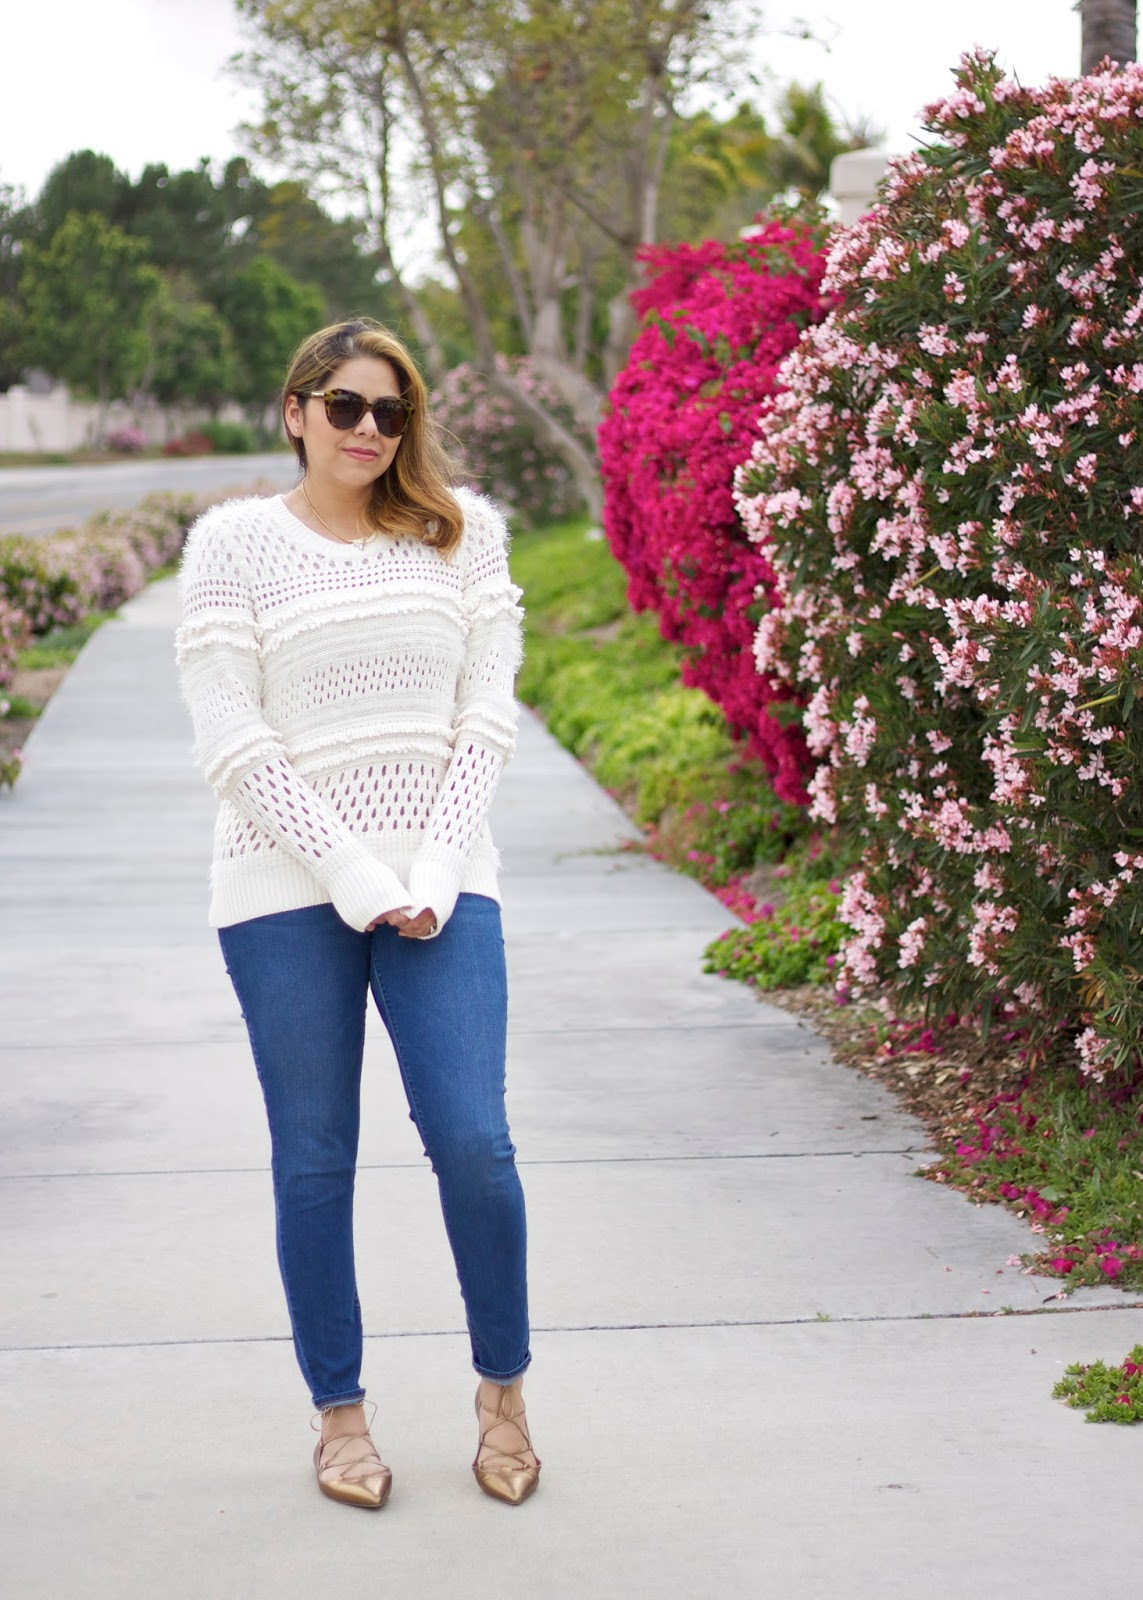 Fringe Sweater and Jeans, Banana republic sweater, spring sweater 2016, jeans outfit, san diego style